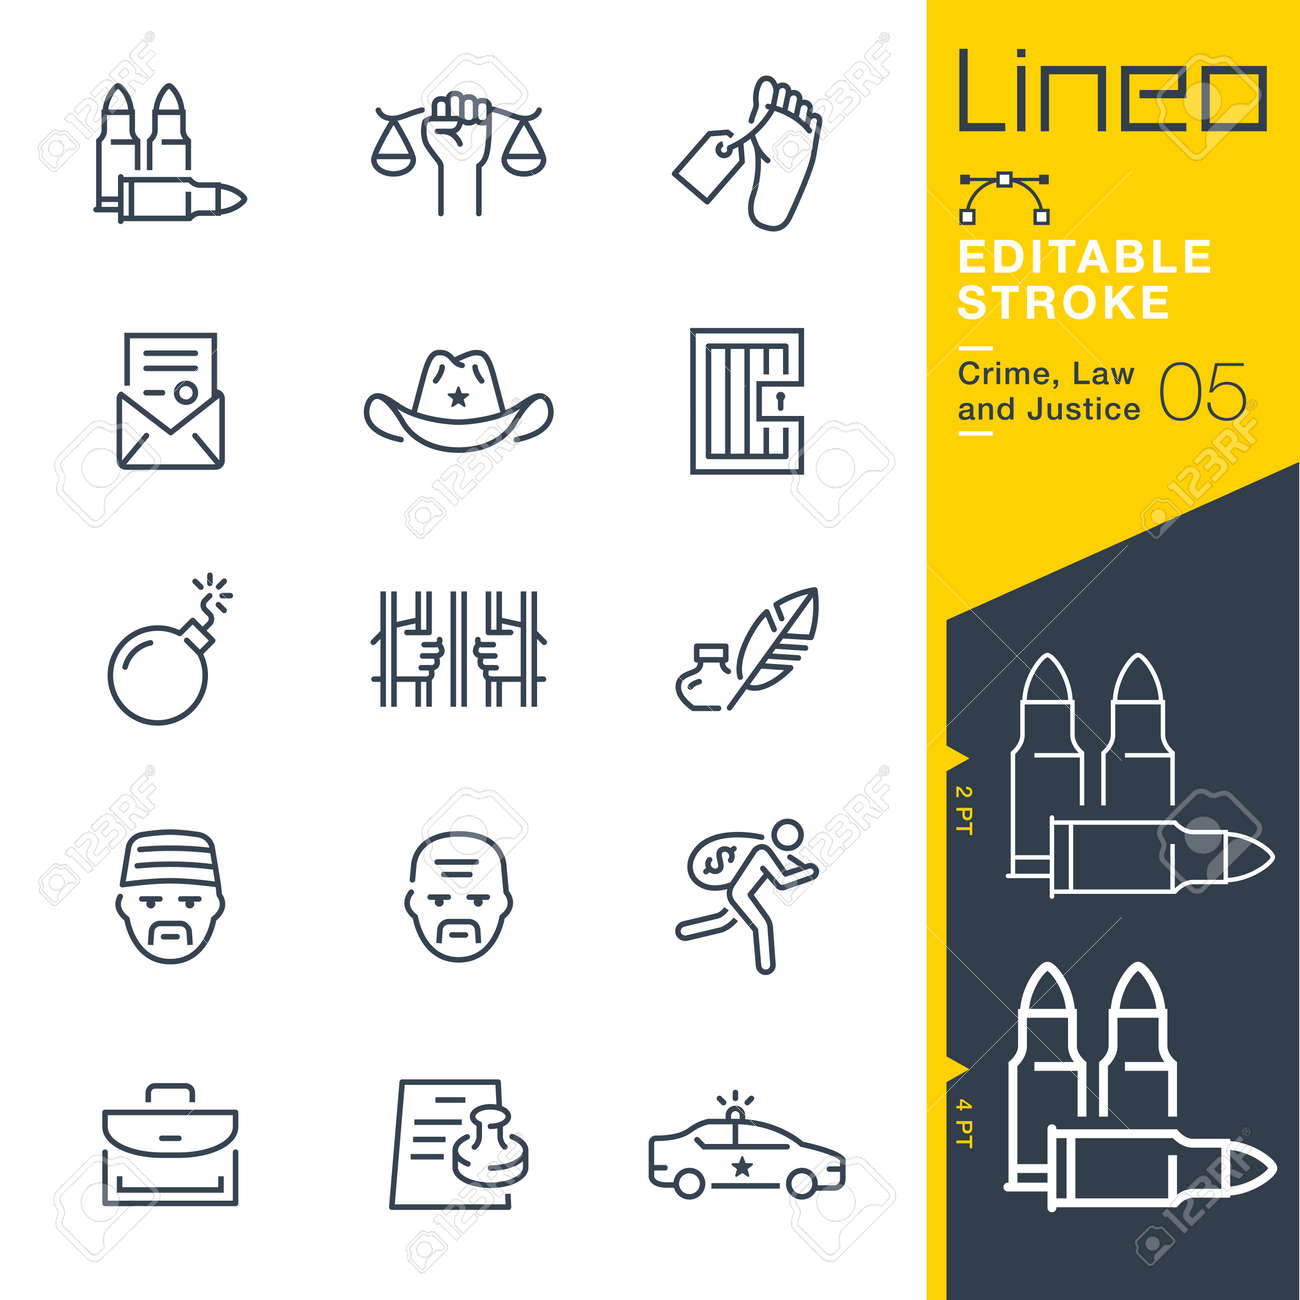 Lineo Editable Stroke - Crime, Justice and Justice line icons - 92485720